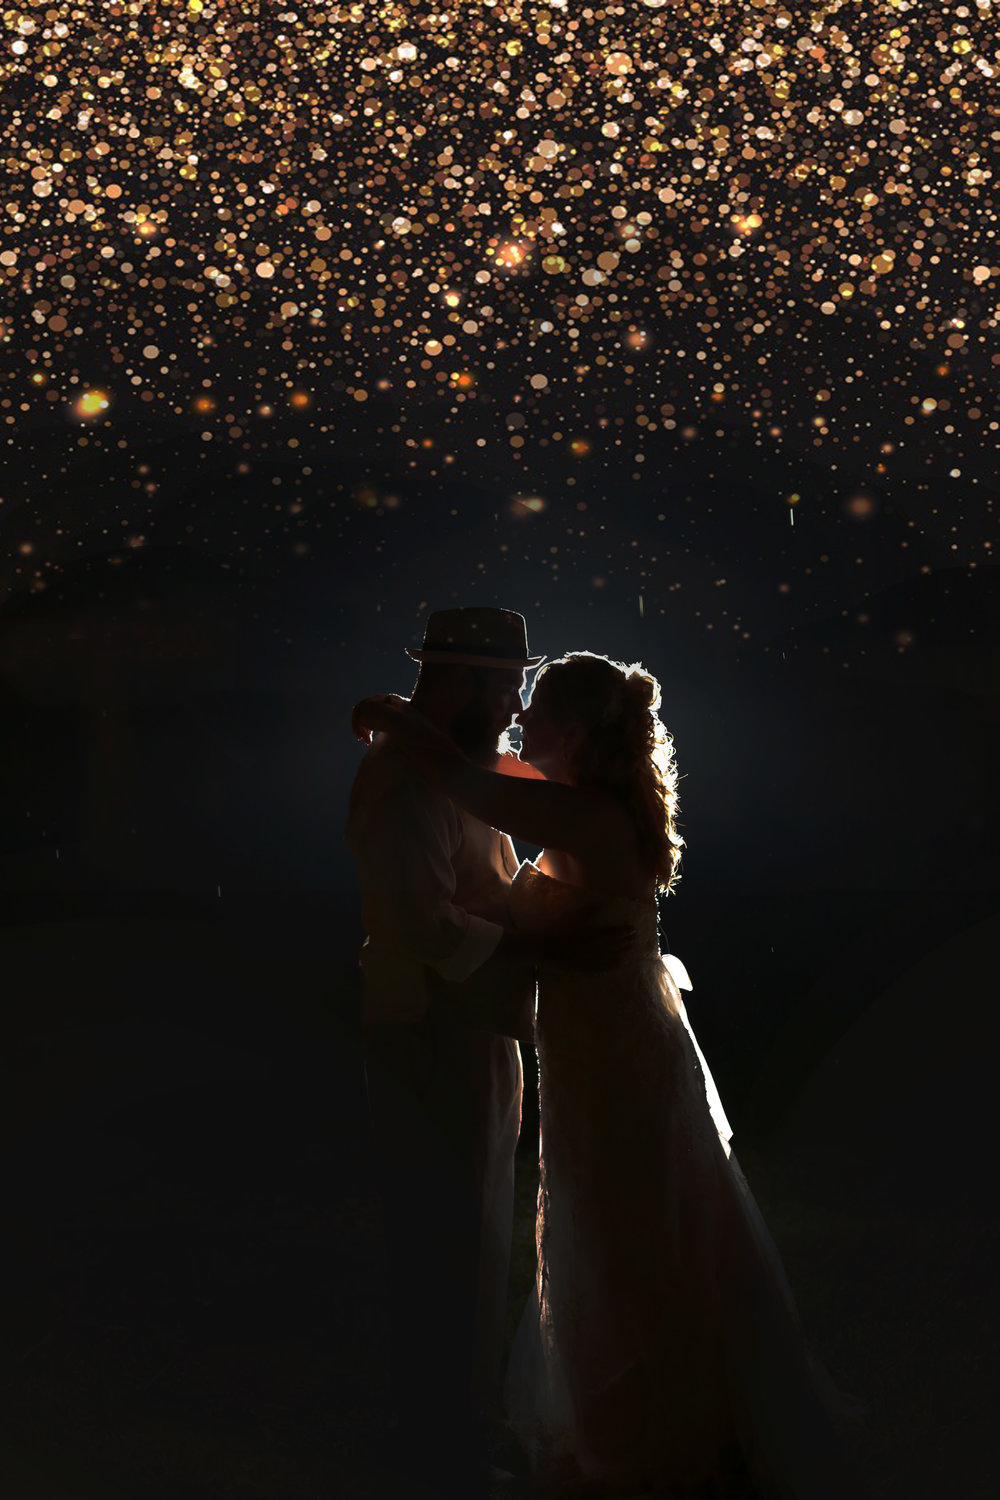 Sparkly photo of the bride and groom